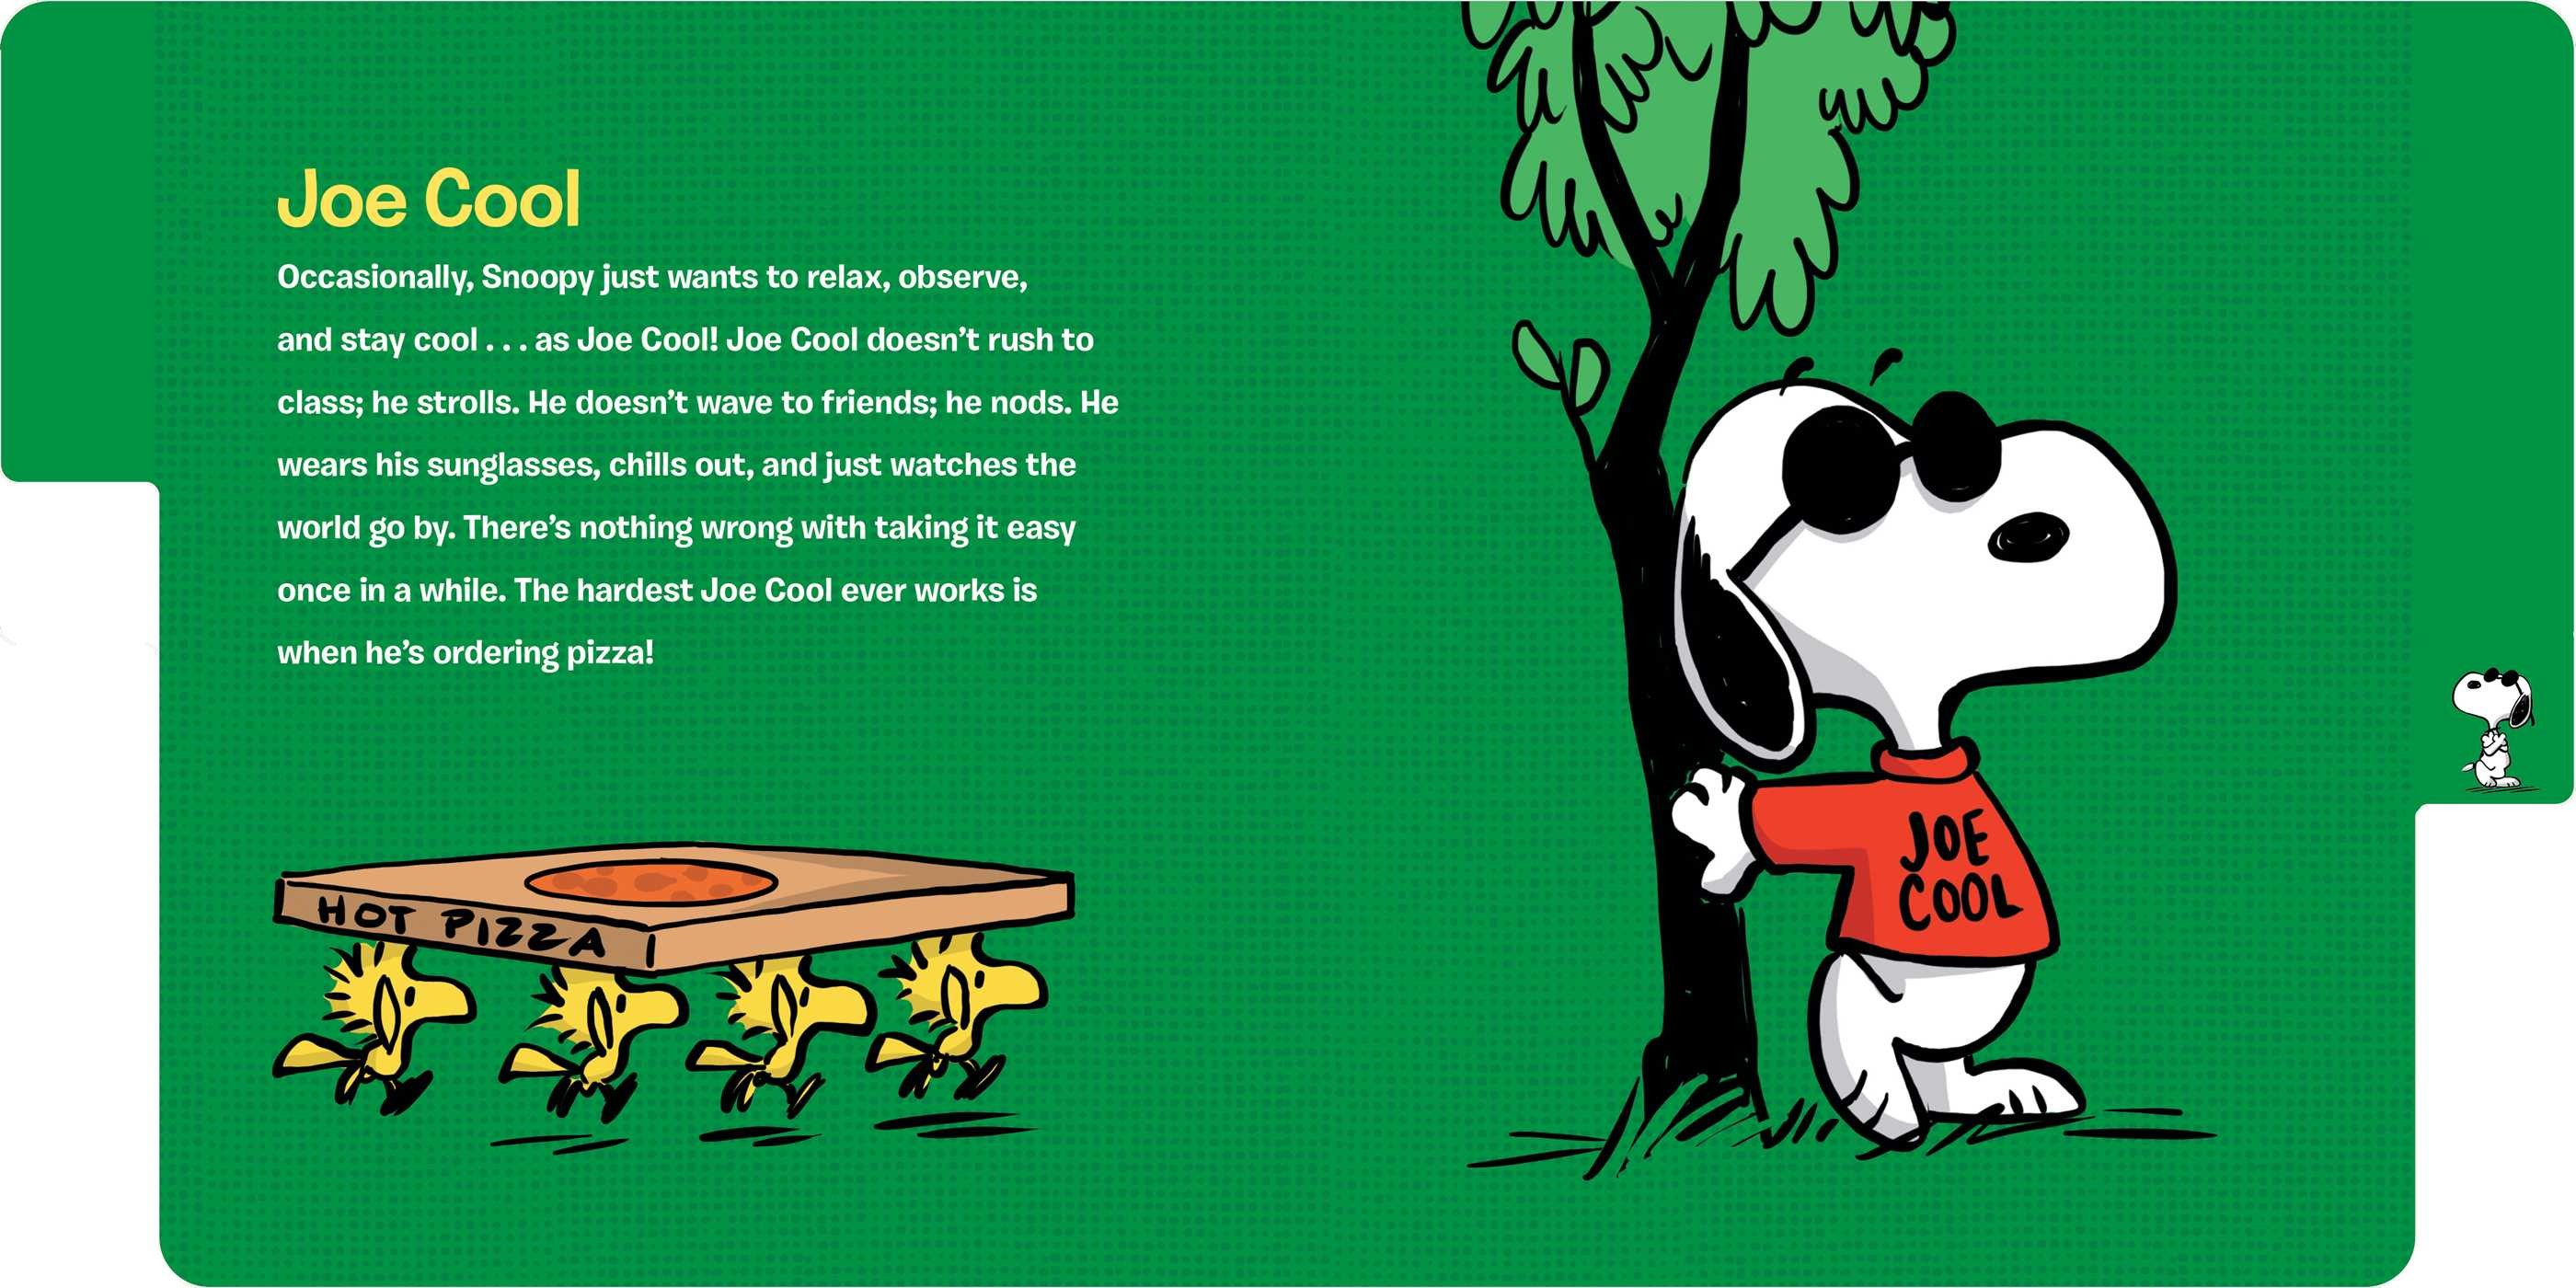 Peanuts Fall Wallpaper The Many Faces Of Snoopy Book By Charles M Schulz